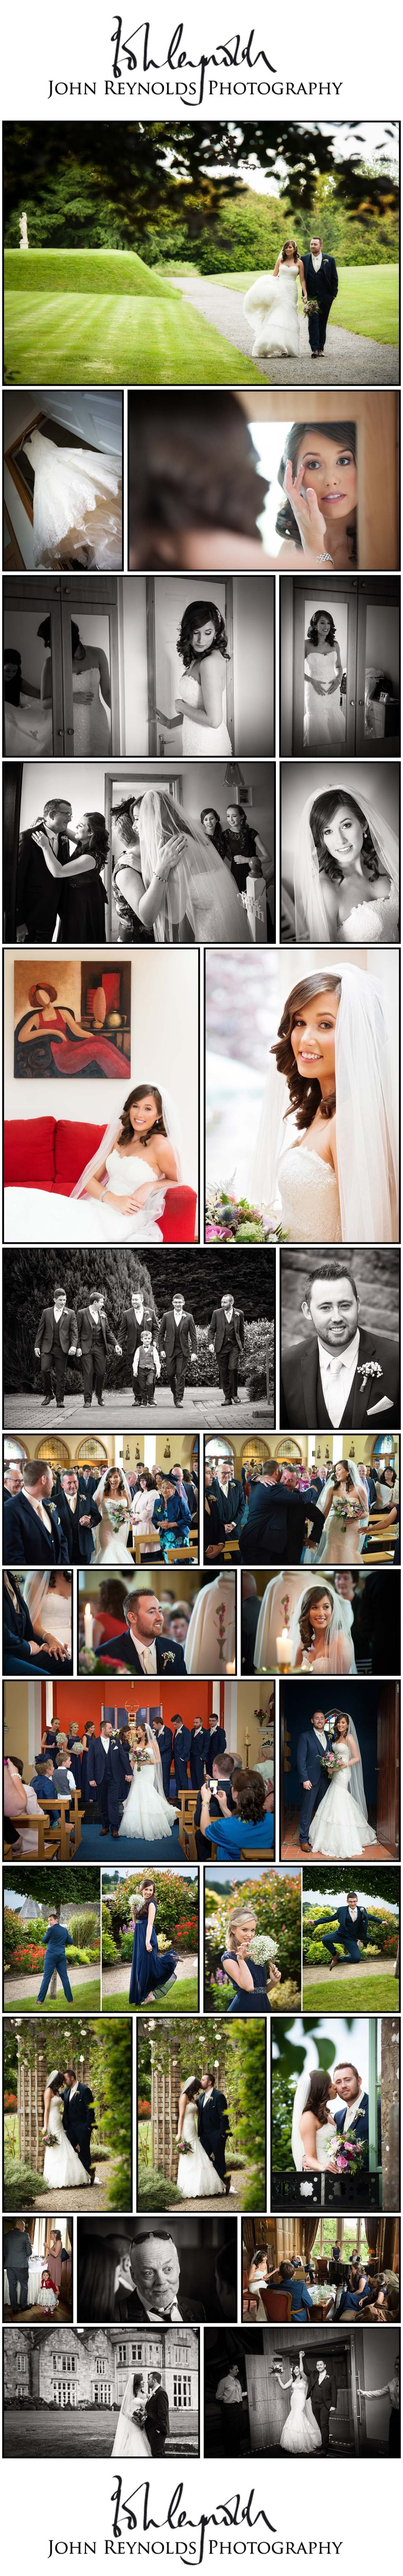 Blog Collage-Aisling & Mark